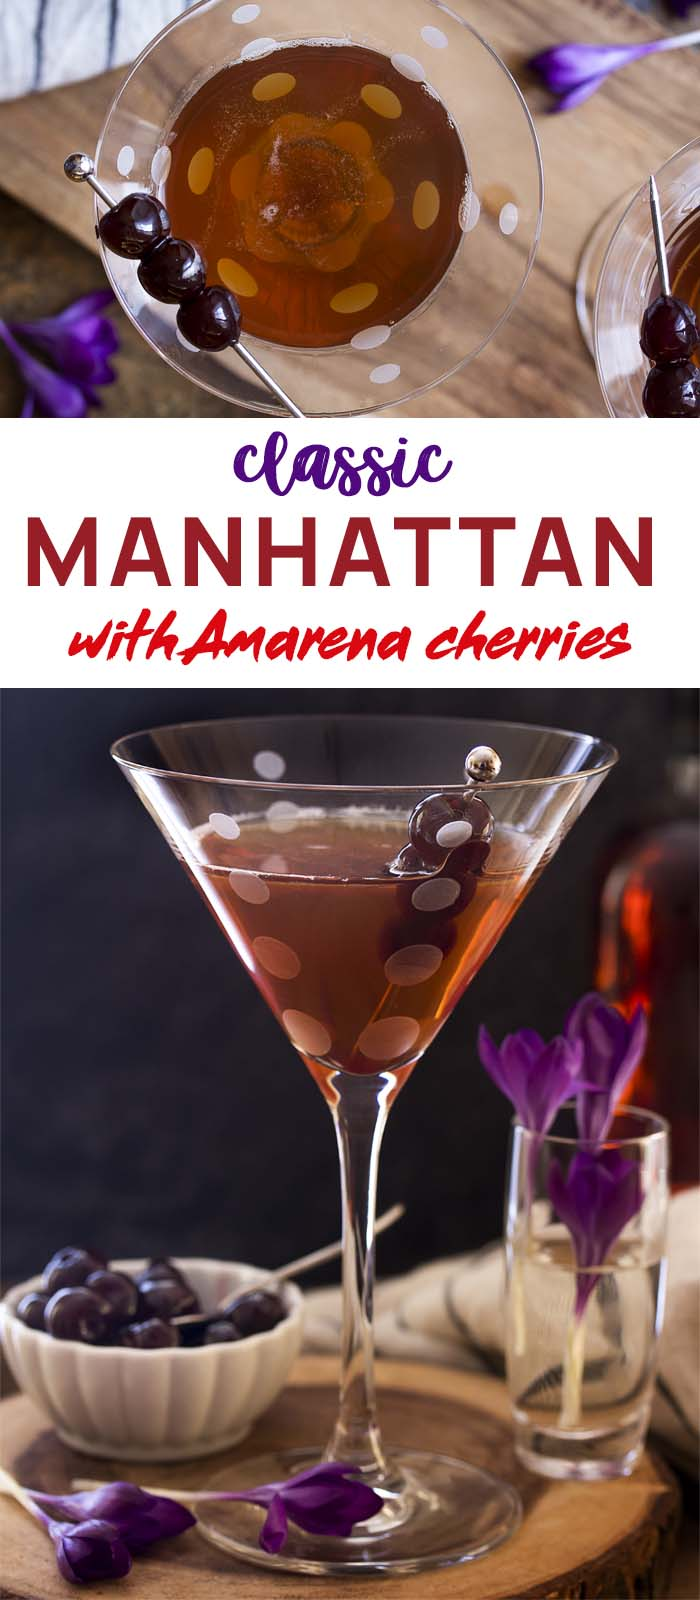 Two view of a Manhattan in a martini glass with text overlay - Classic Manhattan